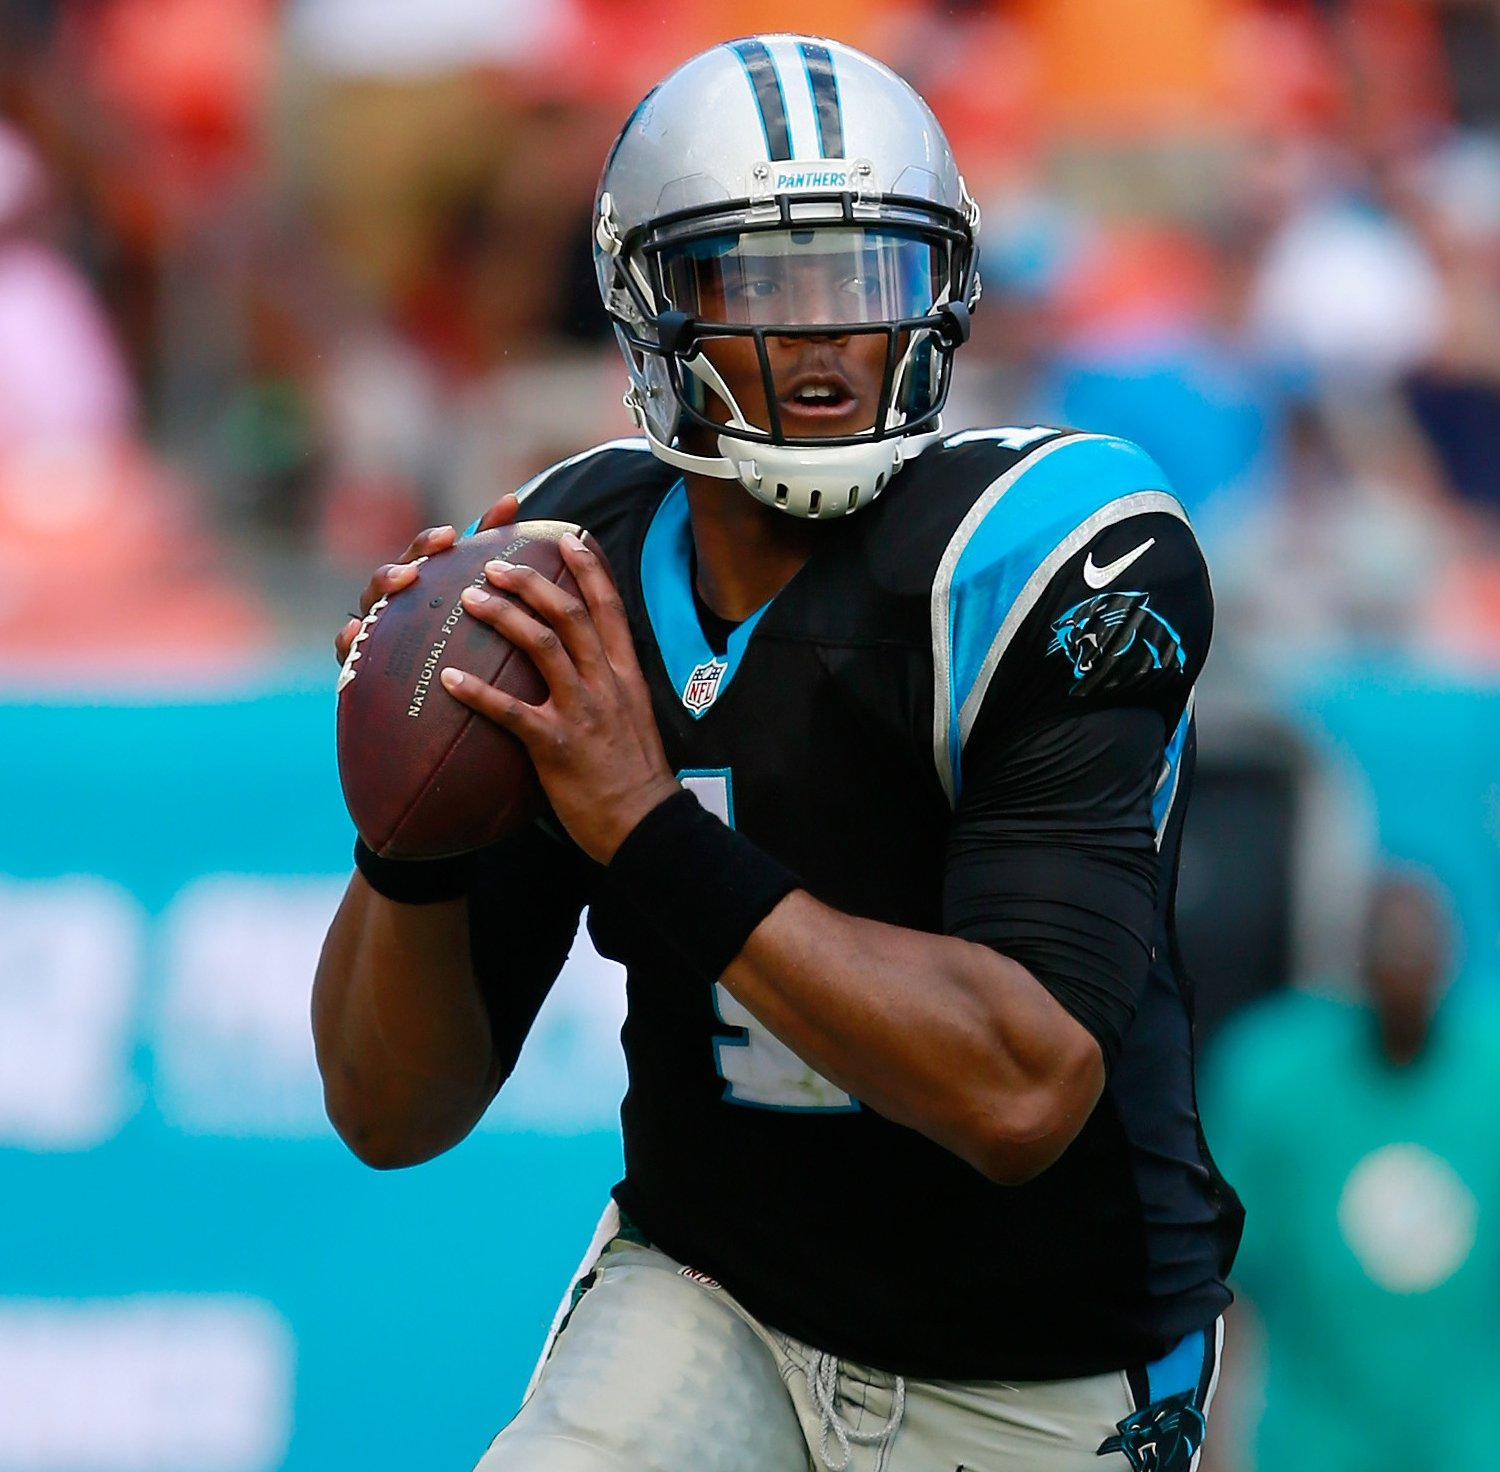 Cam Newtons first Patriots impression, was engaging